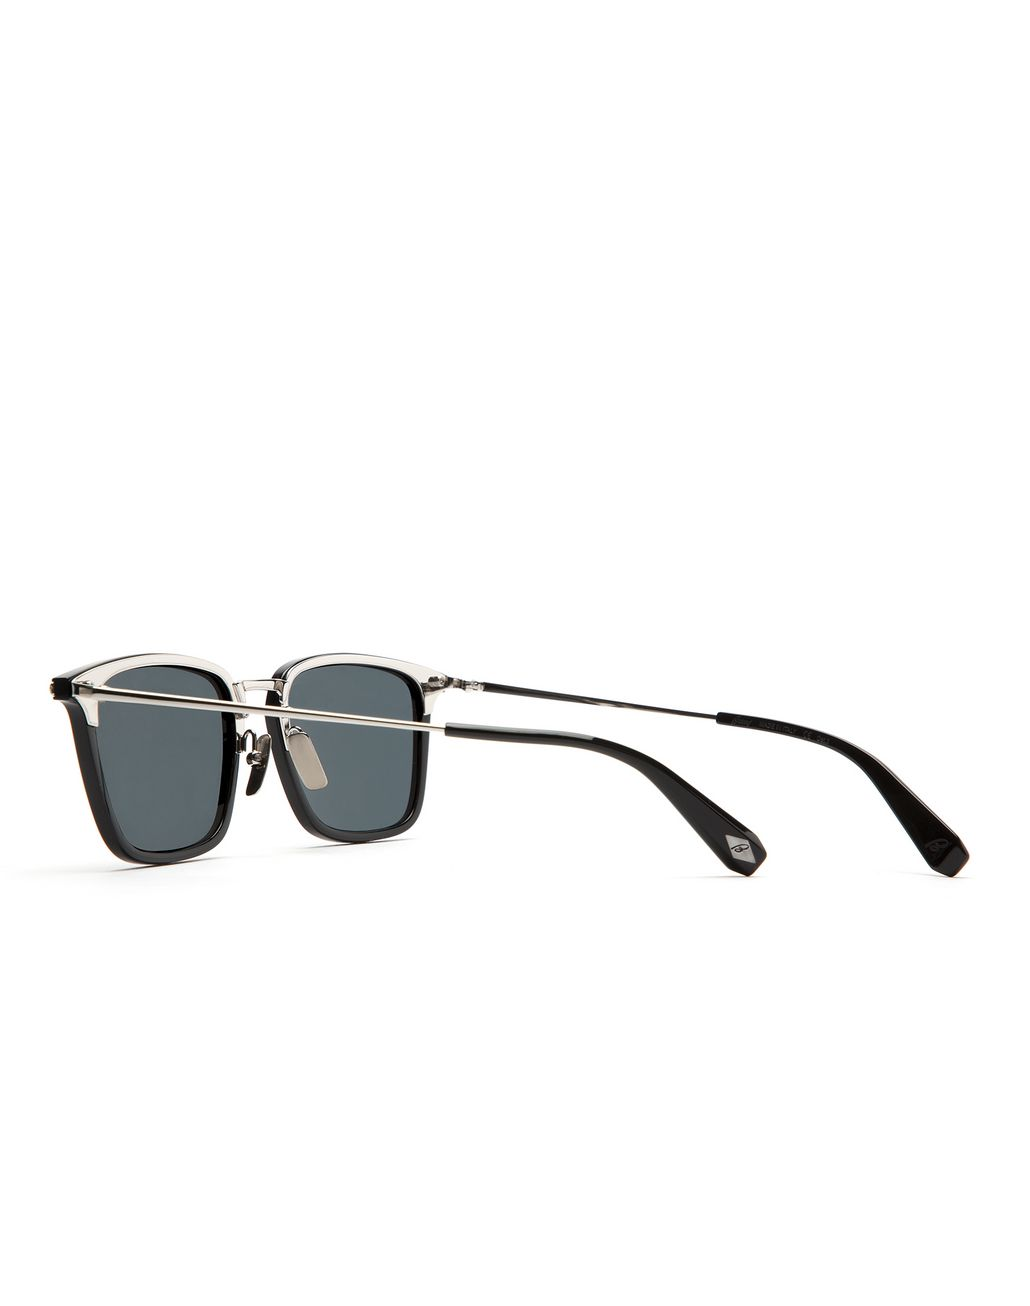 BRIONI Shiny Black Squared Sunglasses with Grey Lenses  Sunglasses Man d